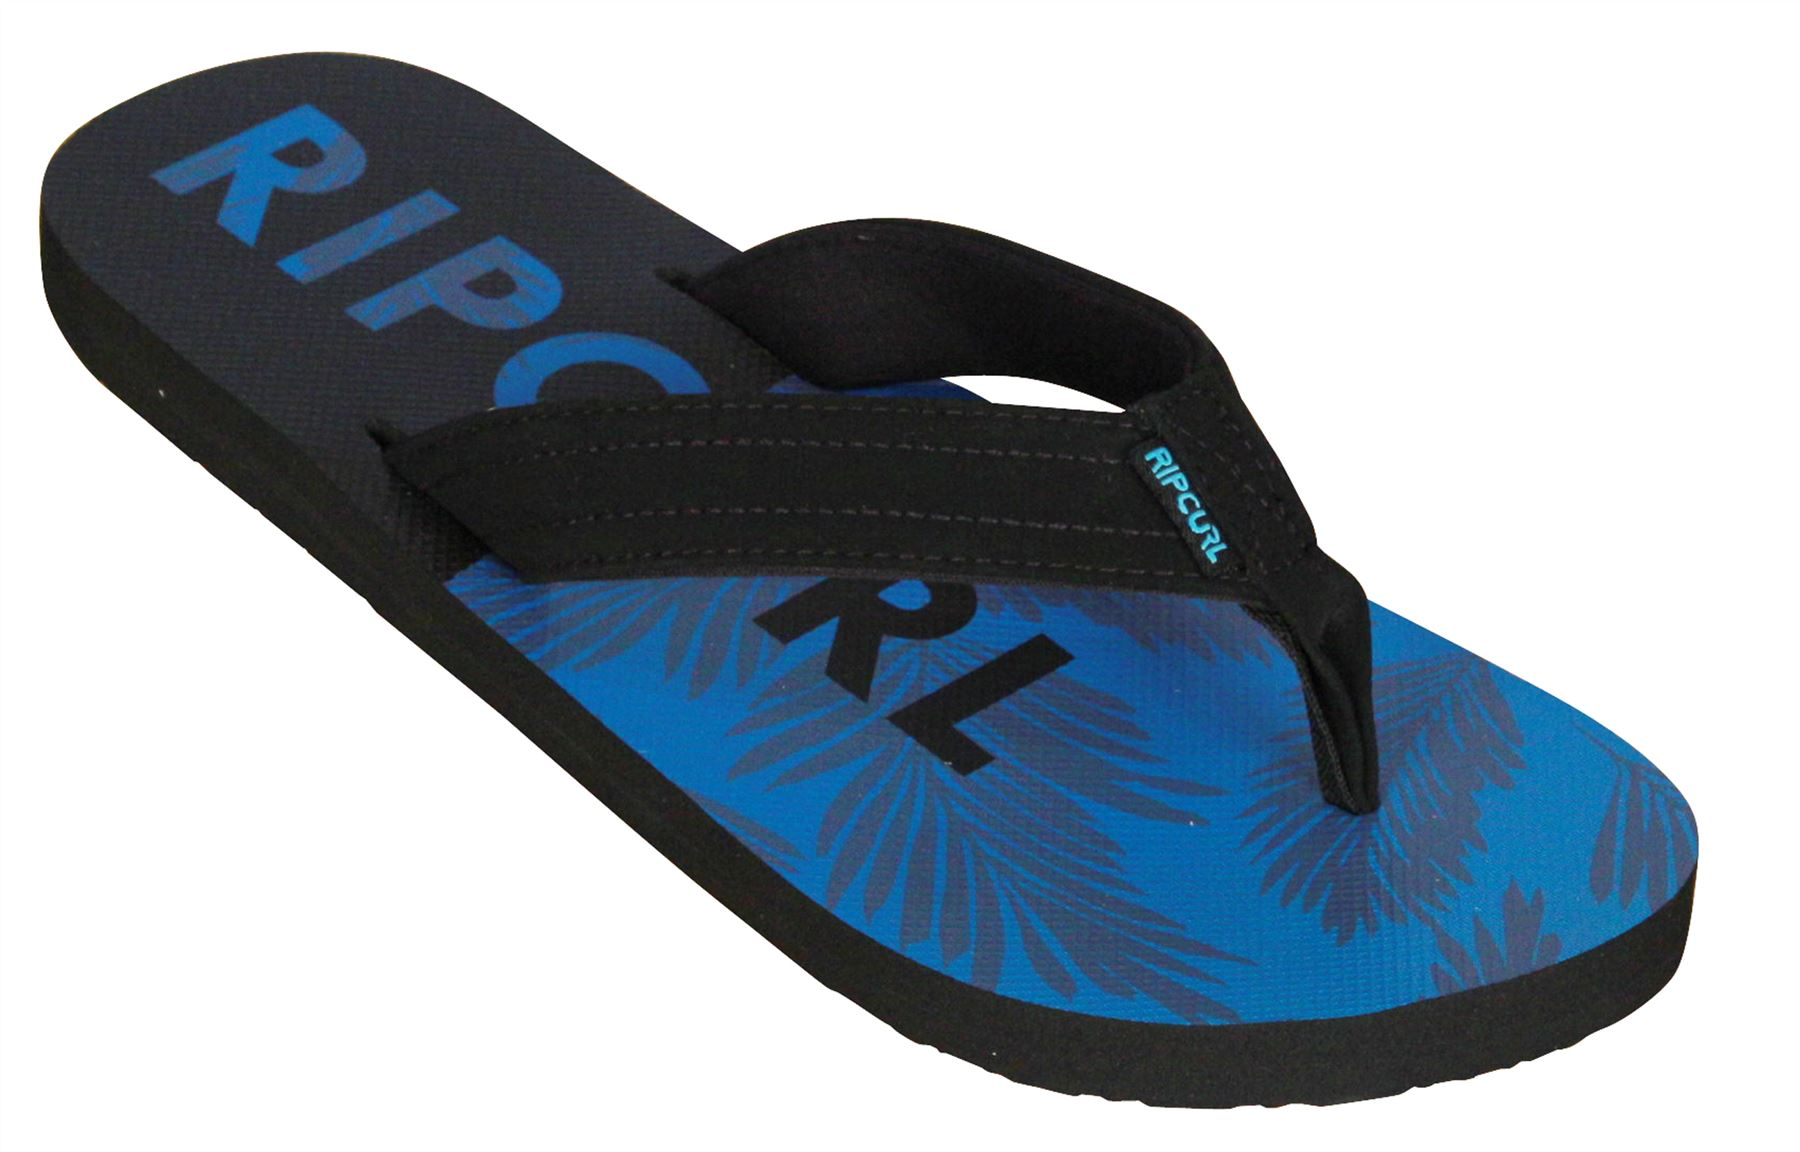 d1ee12907b4bb Details about Rip Curl Mens Sandals ~ Ripper black blue